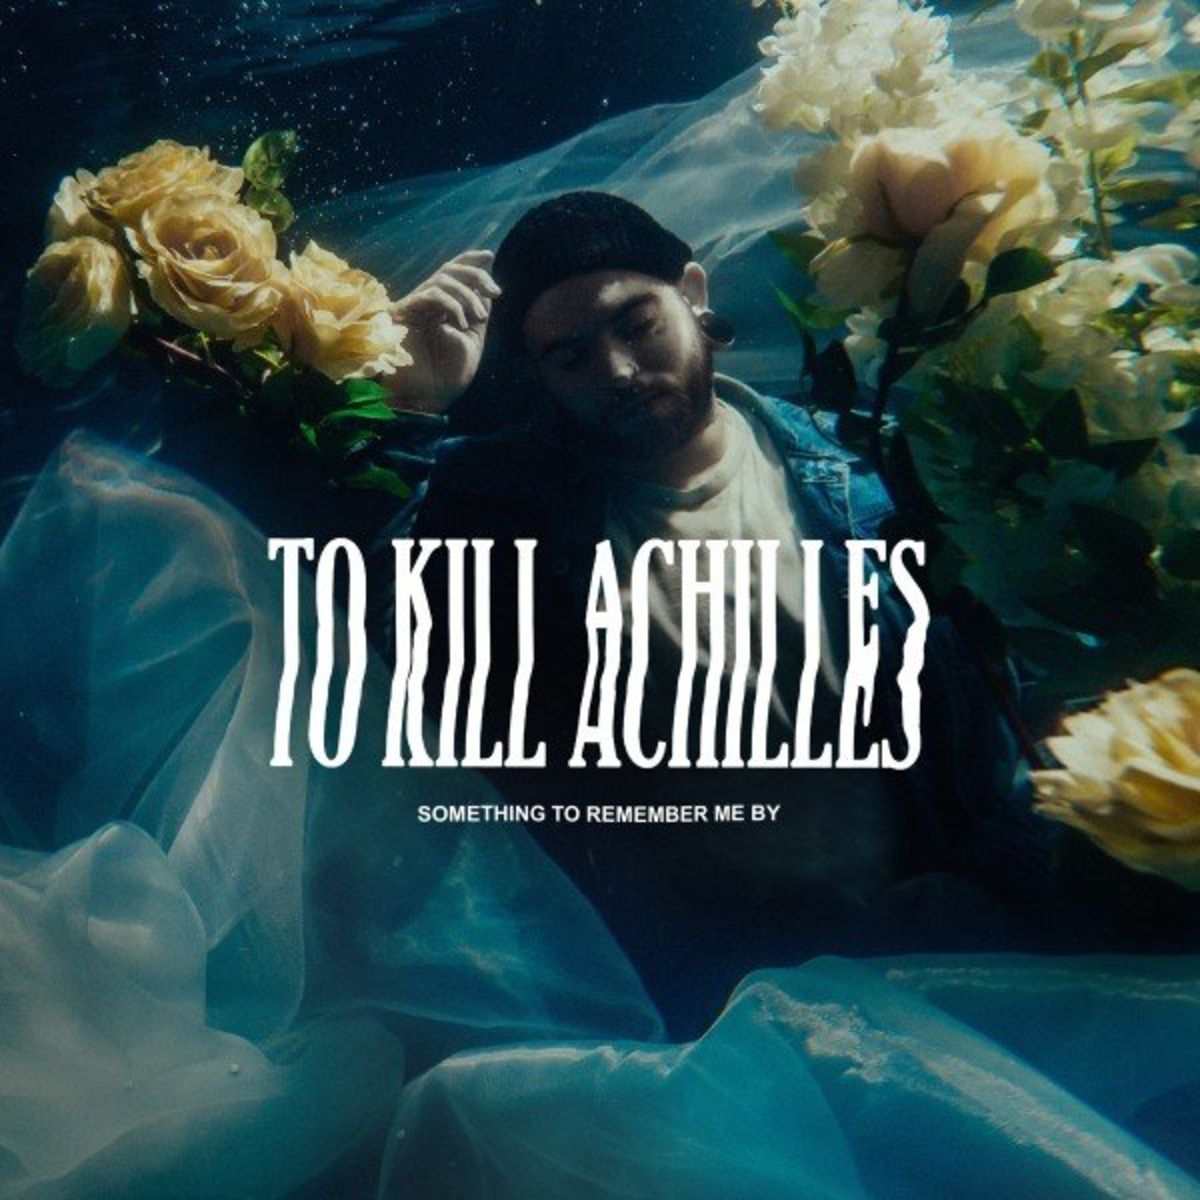 To Kill Achilles - fourpercent [single] (2020)